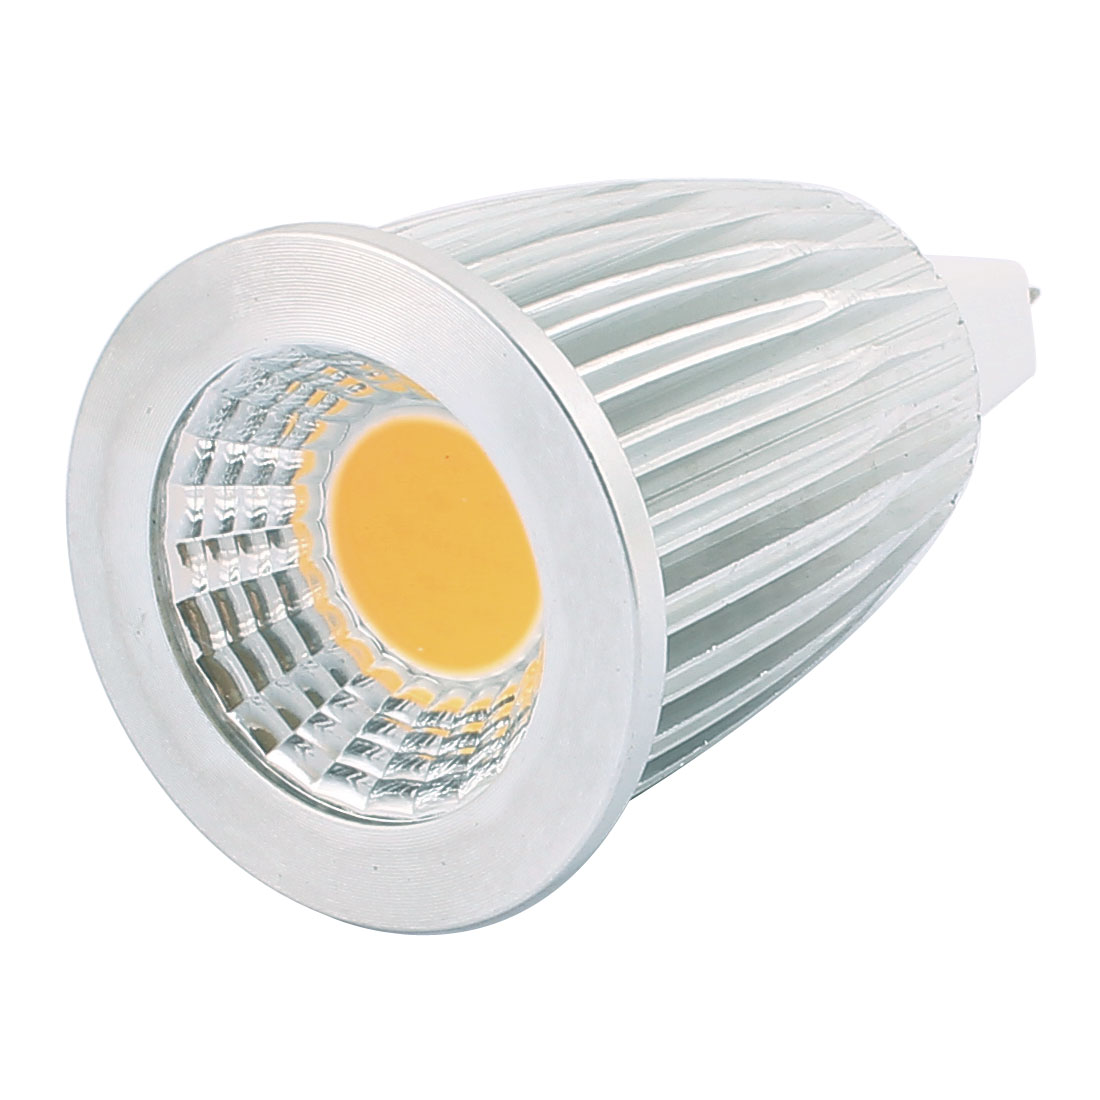 AC85-265V 7W GU5.3 COB LED Spotlight Lamp Bulb Energy Saving Downlight Warm White